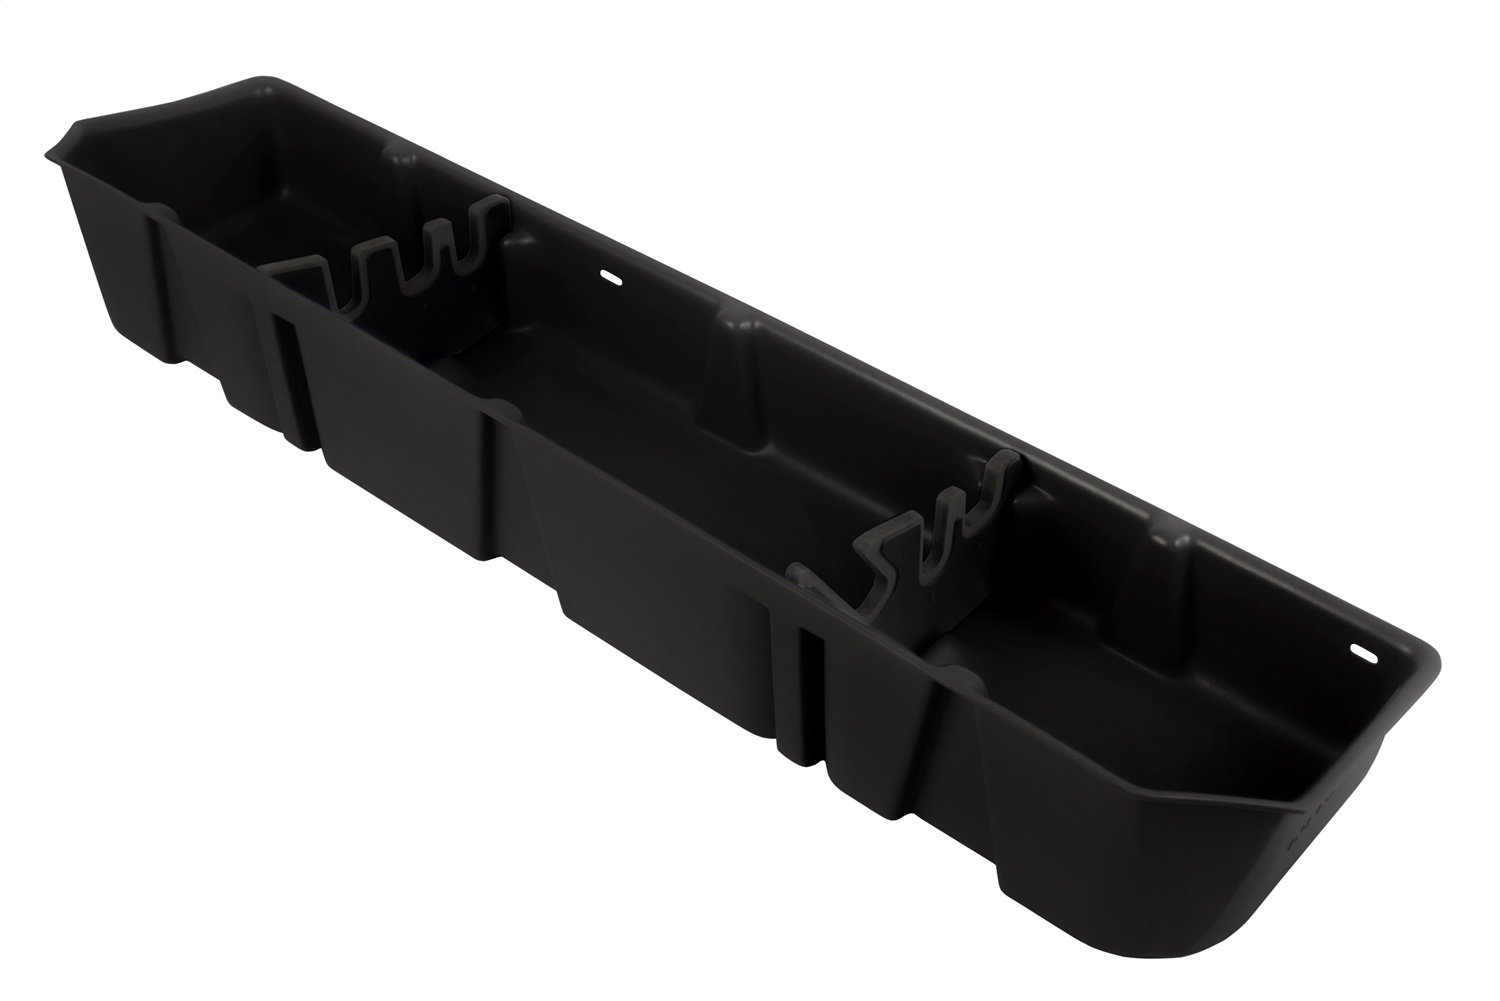 DU-HA Under Seat Storage Fits 15-17 Ford F-150 SuperCrew, Black, Part #20110 by DU-HA